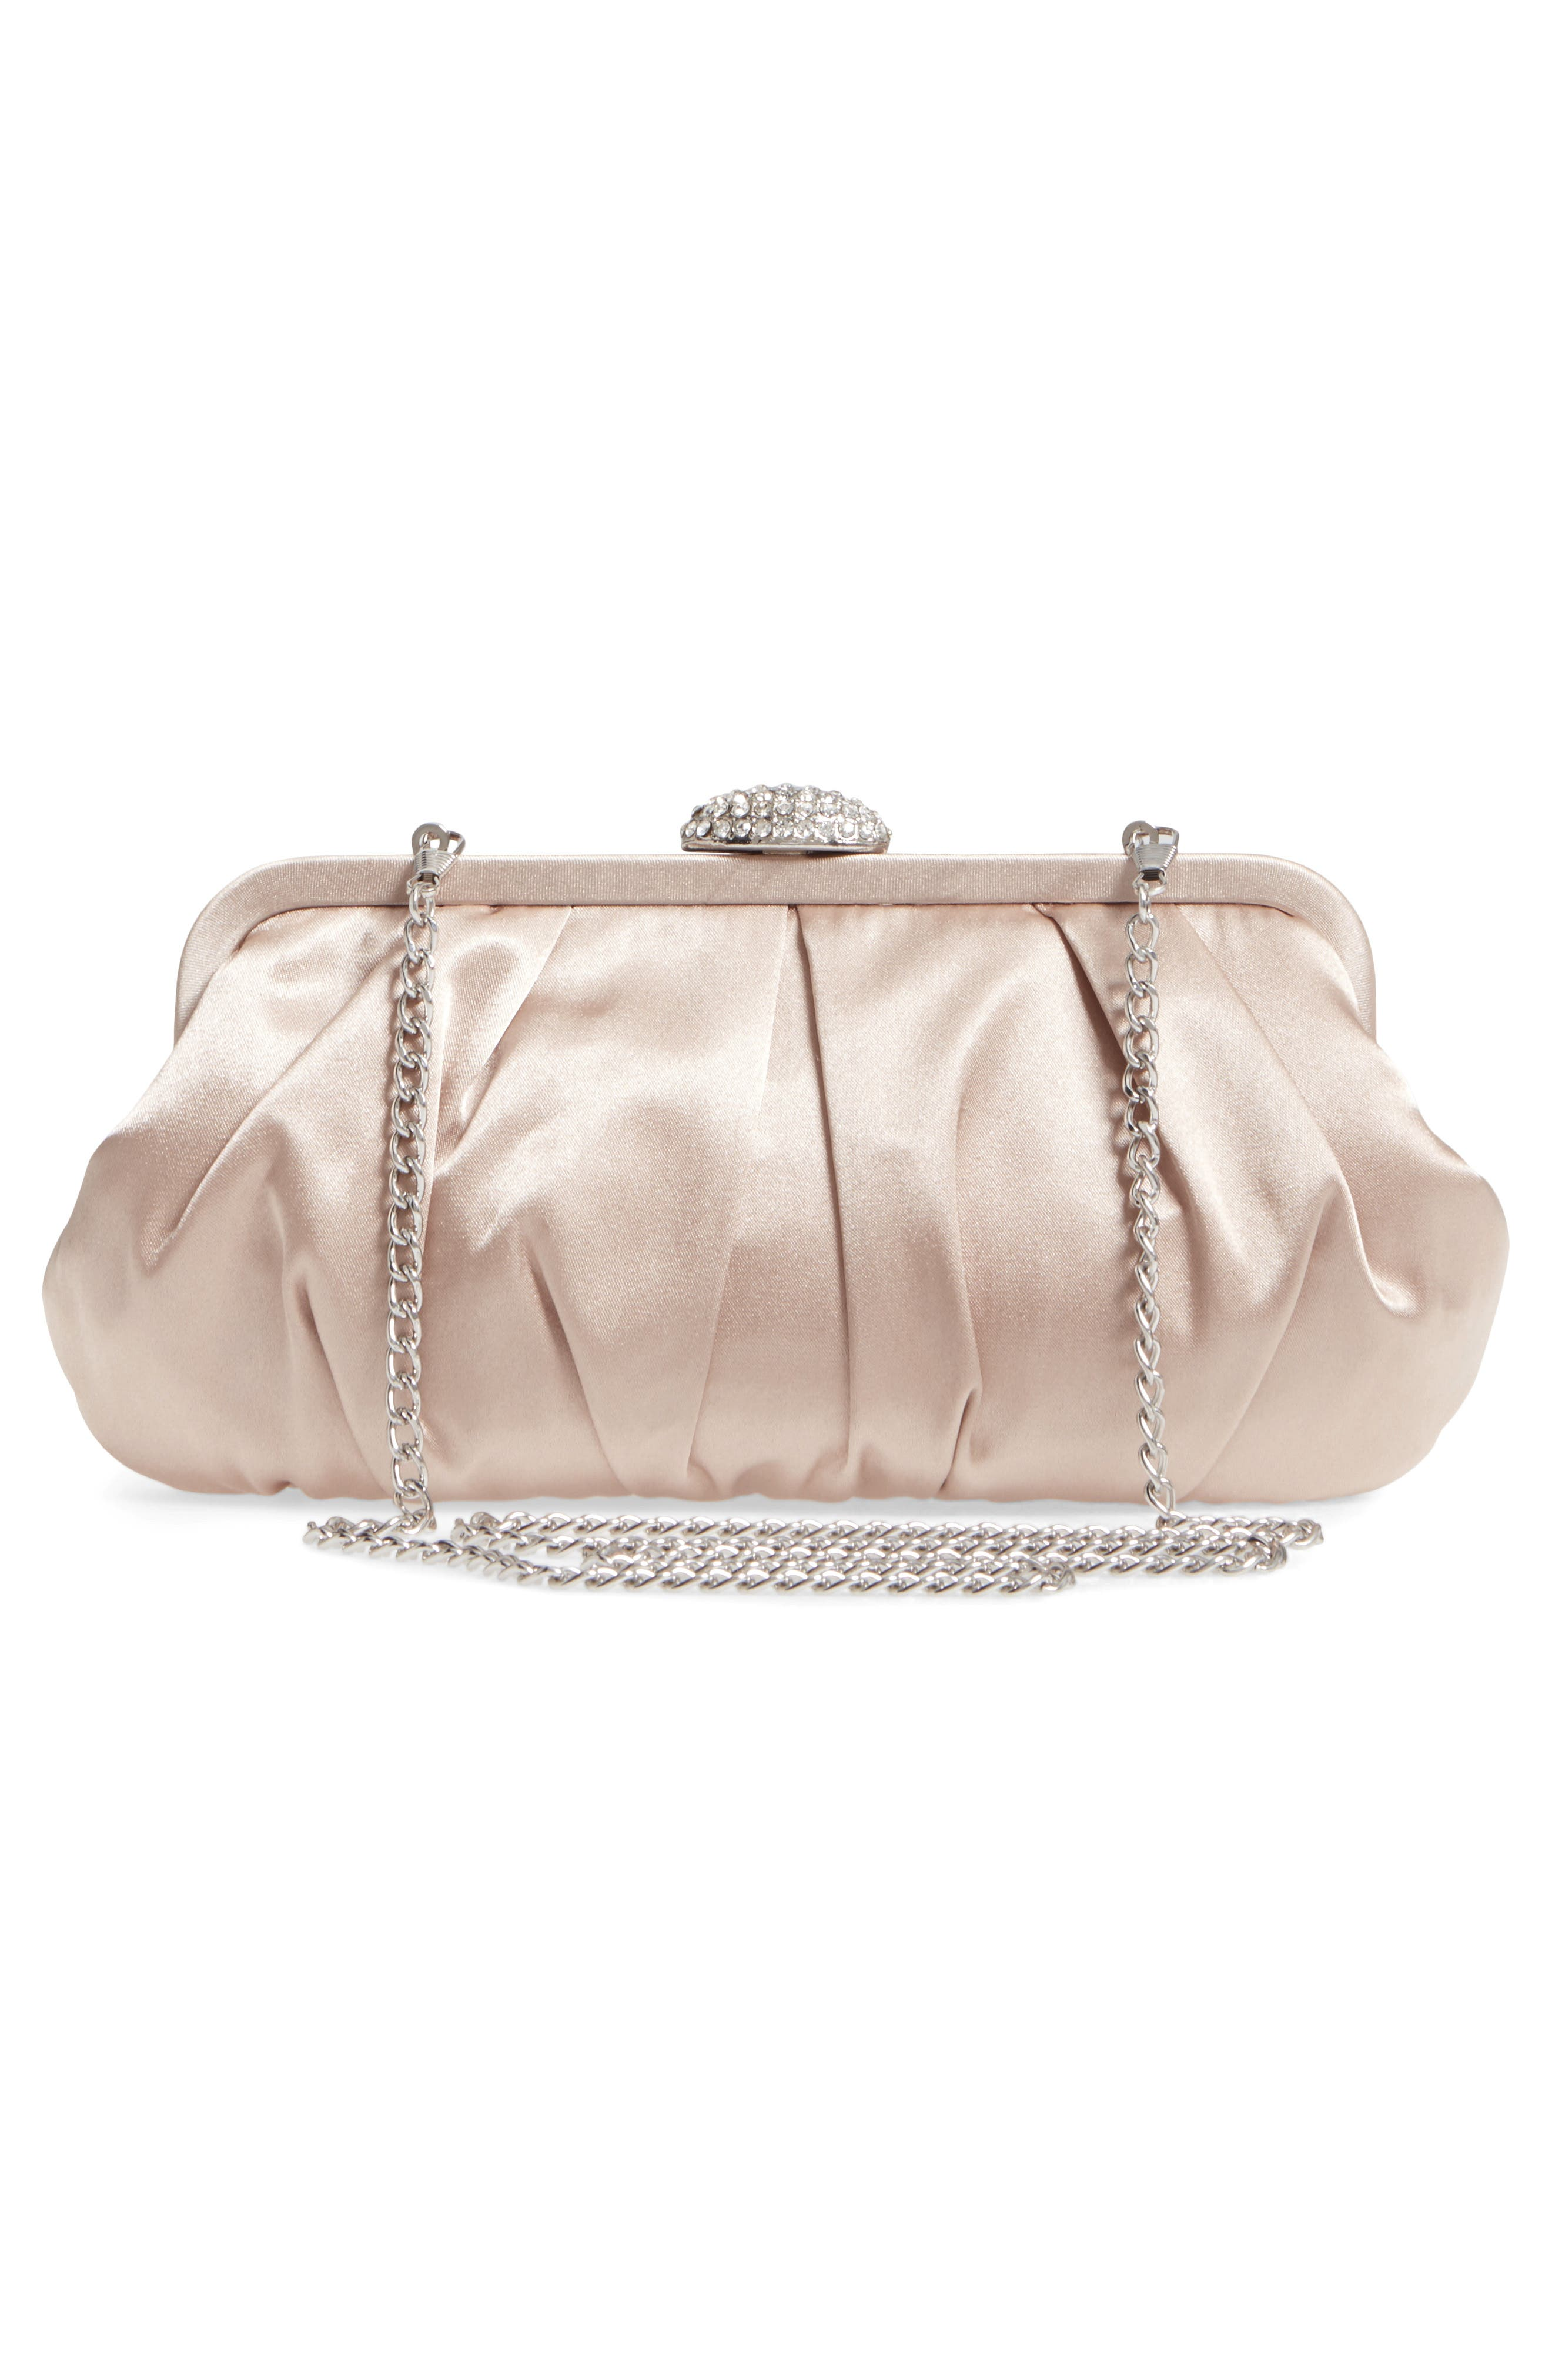 Concord Pleated Satin Frame Clutch,                             Alternate thumbnail 3, color,                             Champagne